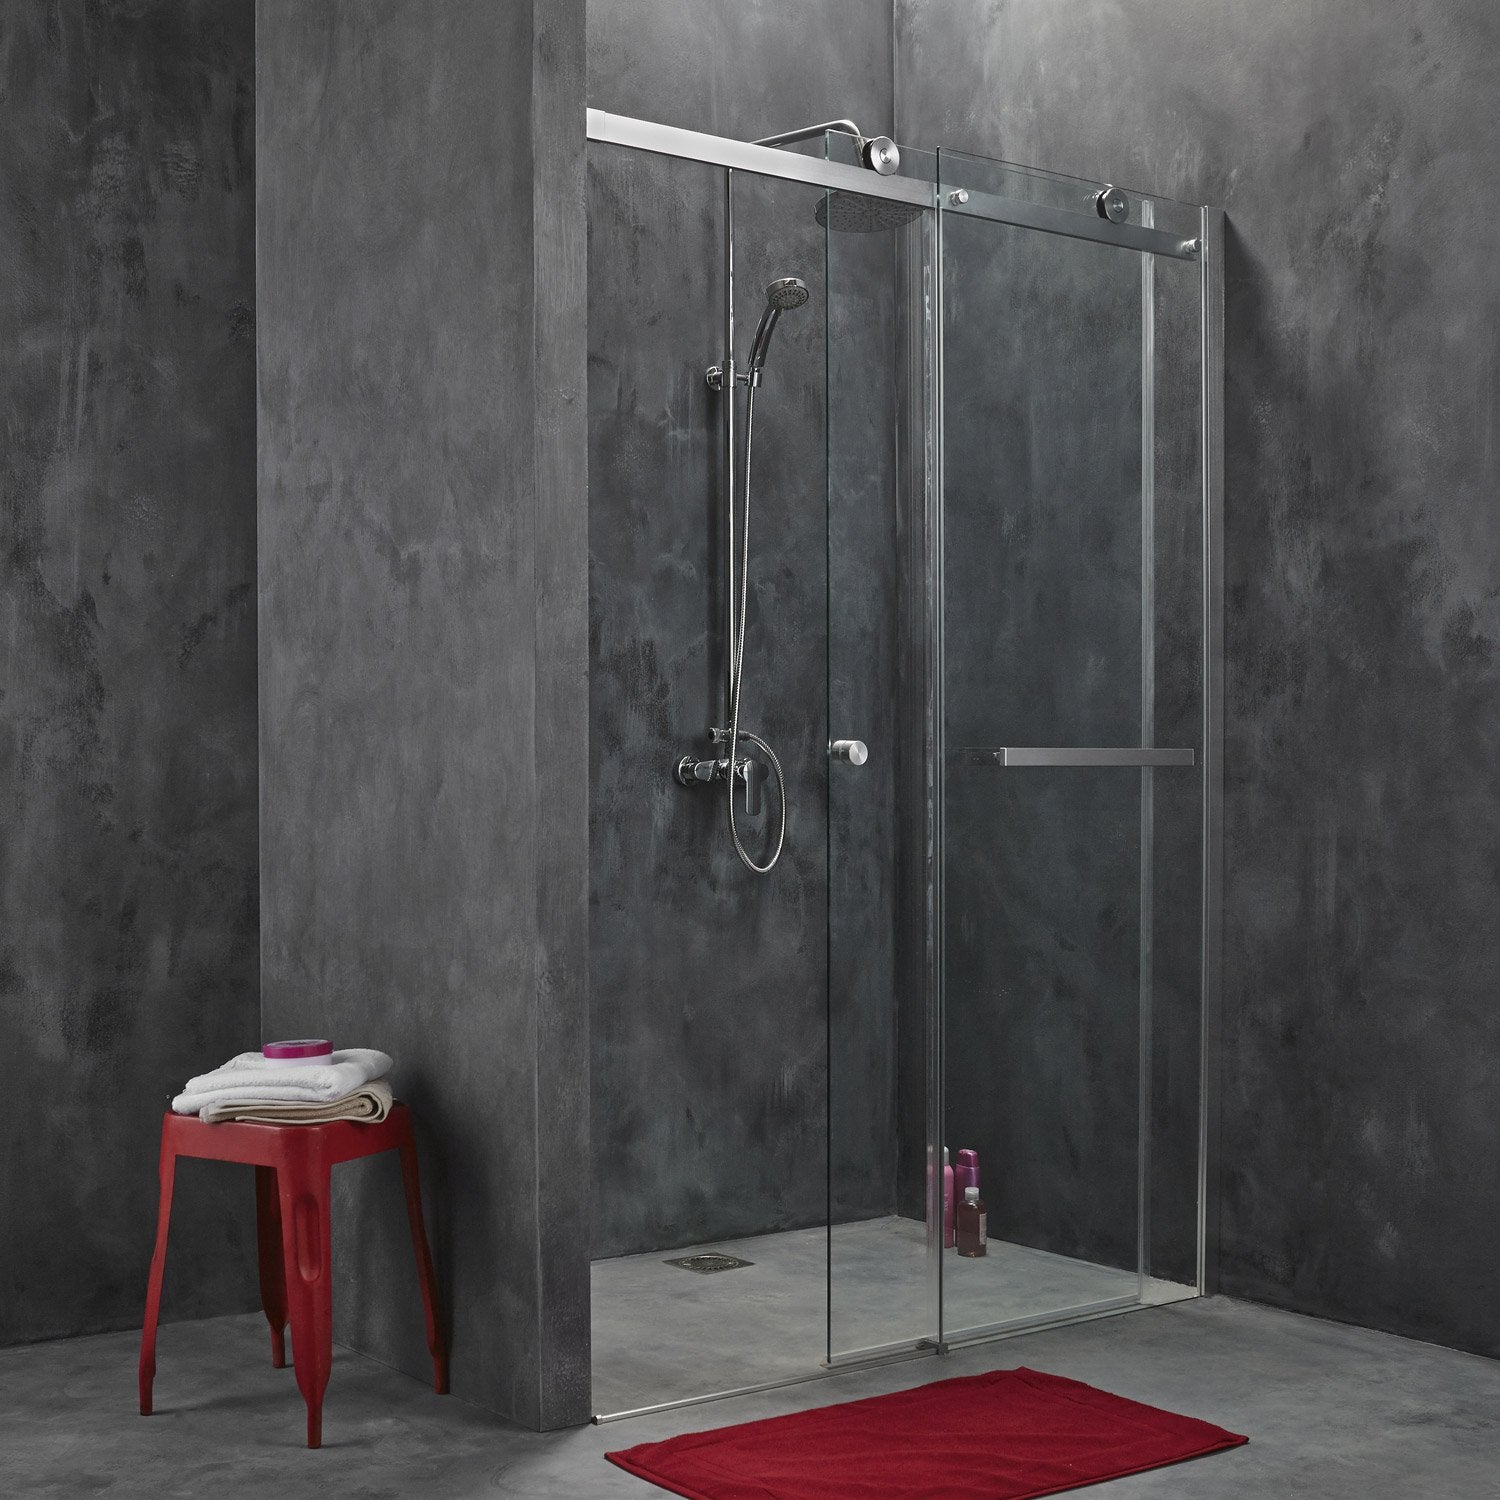 porte de douche coulissante 137 140 cm profil chrom. Black Bedroom Furniture Sets. Home Design Ideas